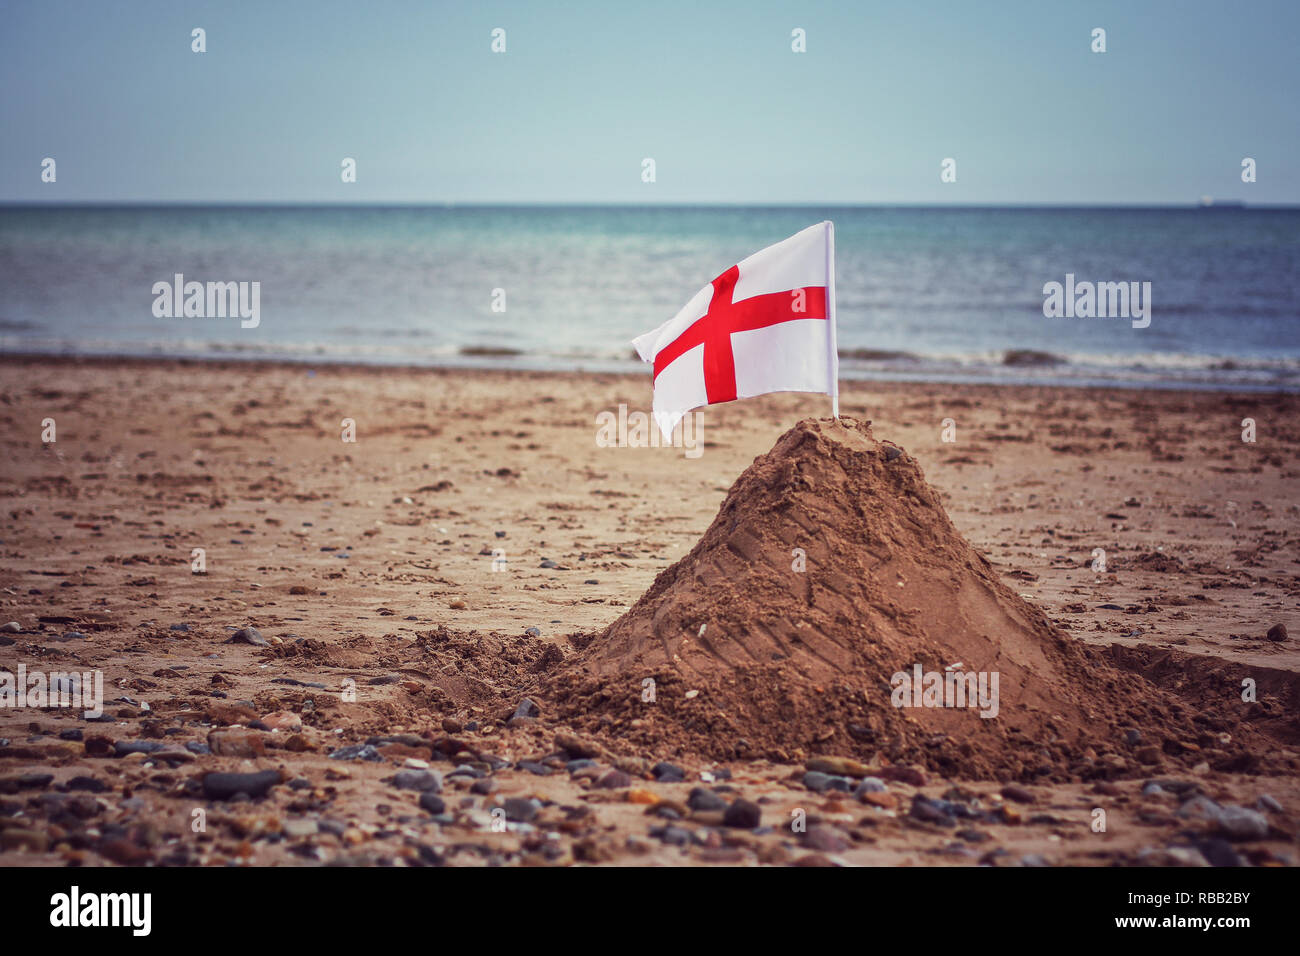 An English St George's Cross flag in a sandcastle on a British beach representing border and boundary control during illegal immigration issues in UK - Stock Image